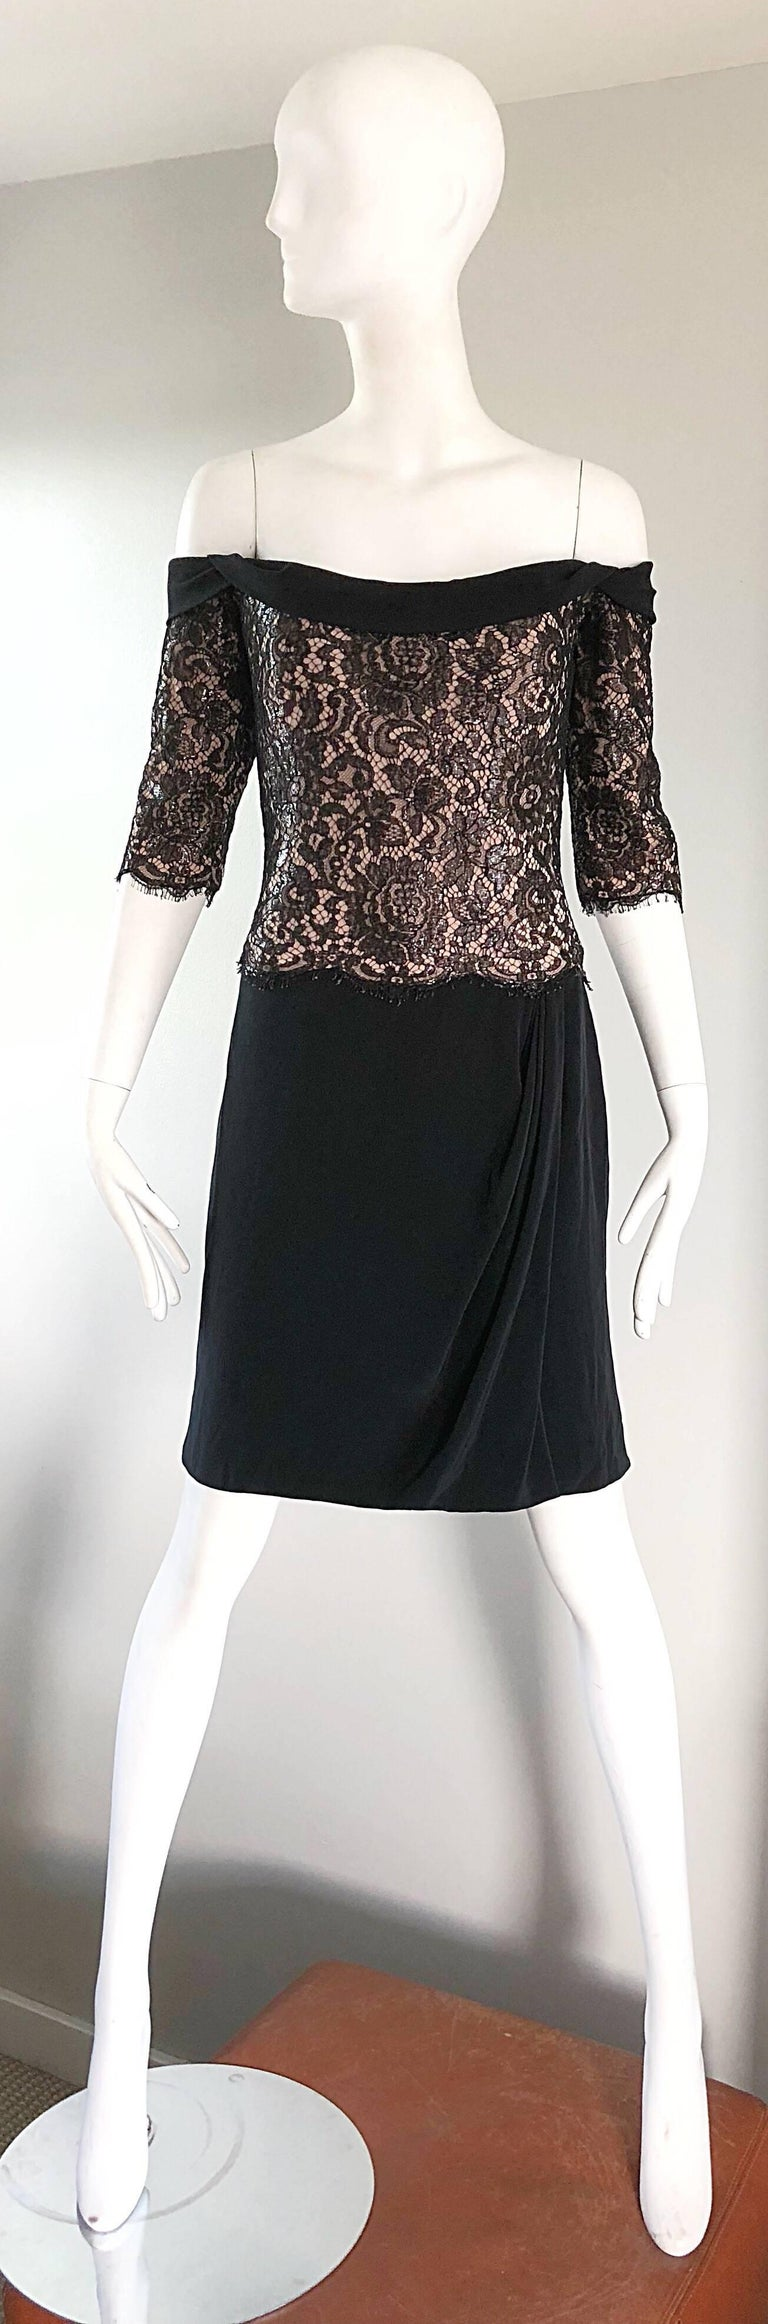 Vintage Bob Mackie Size 14 Black + Nude Lace Crepe Off - Shoulder 1990s Dress 9